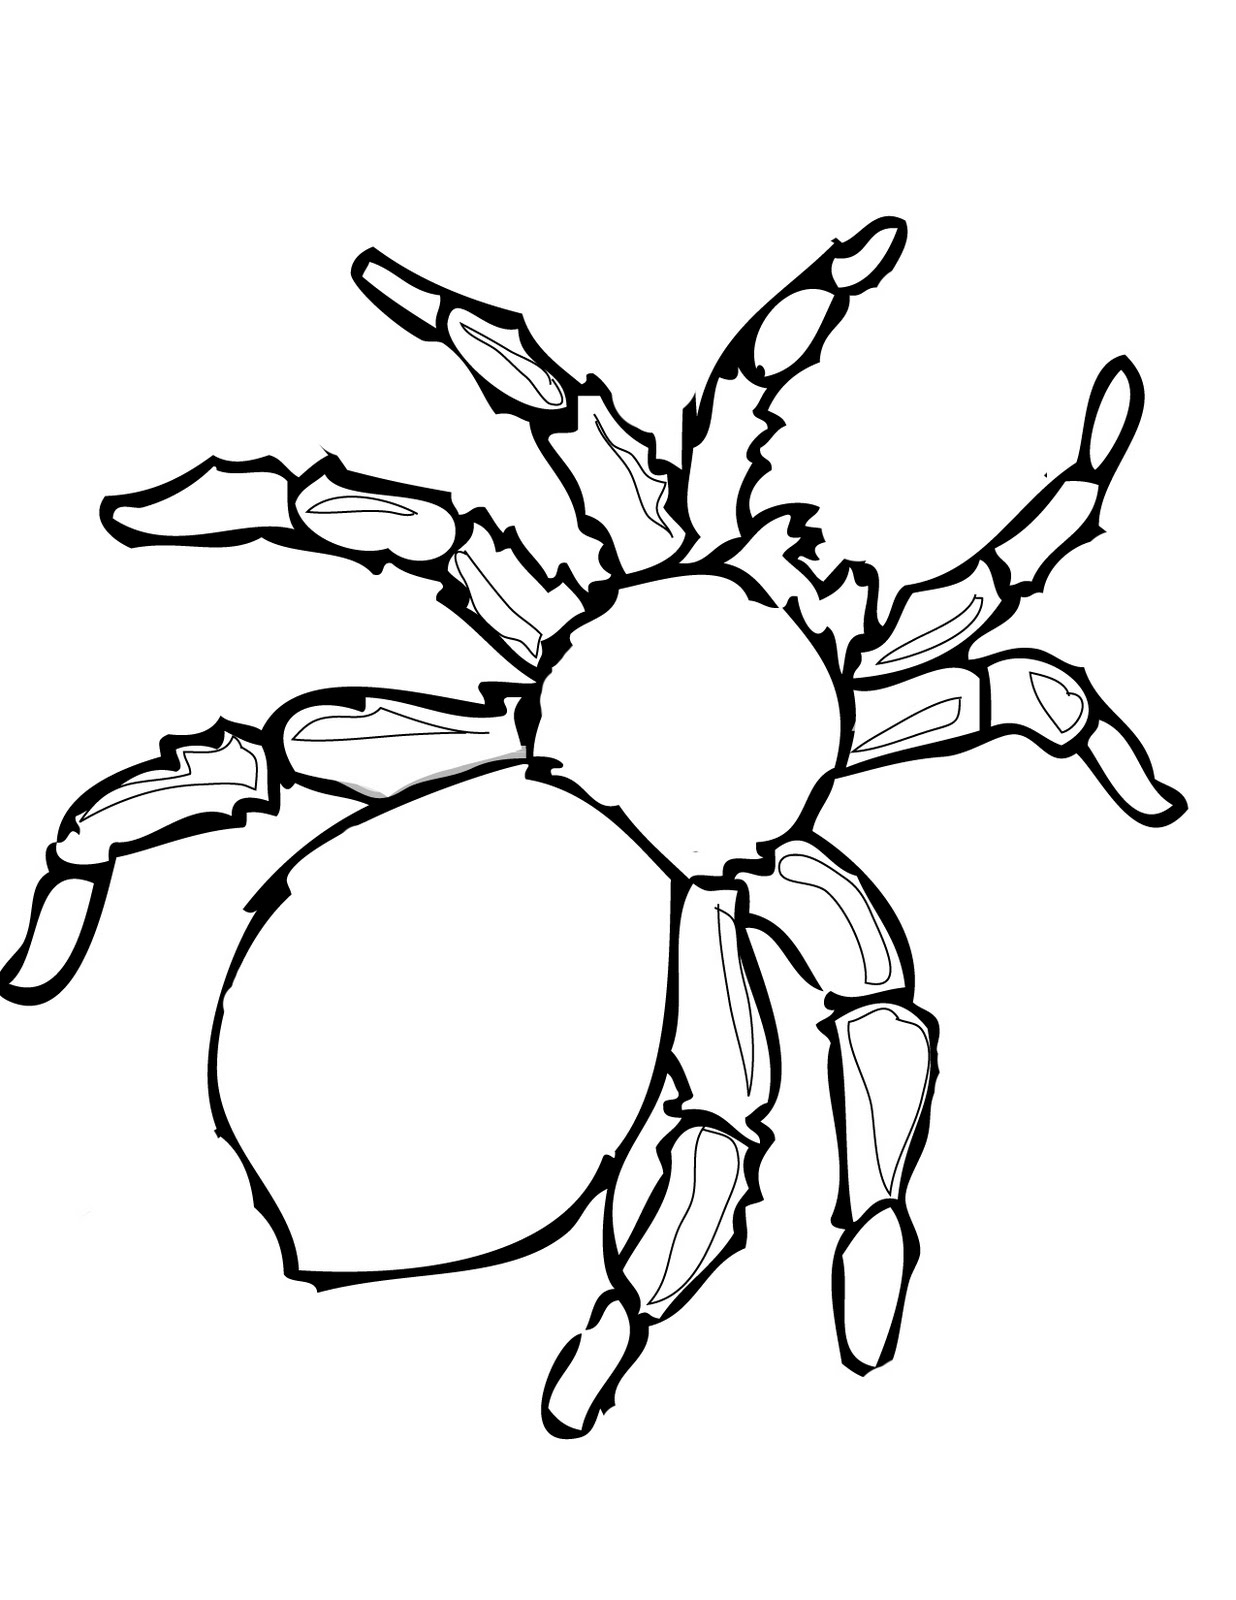 free printable coloring pages for children - free printable spider coloring pages for kids